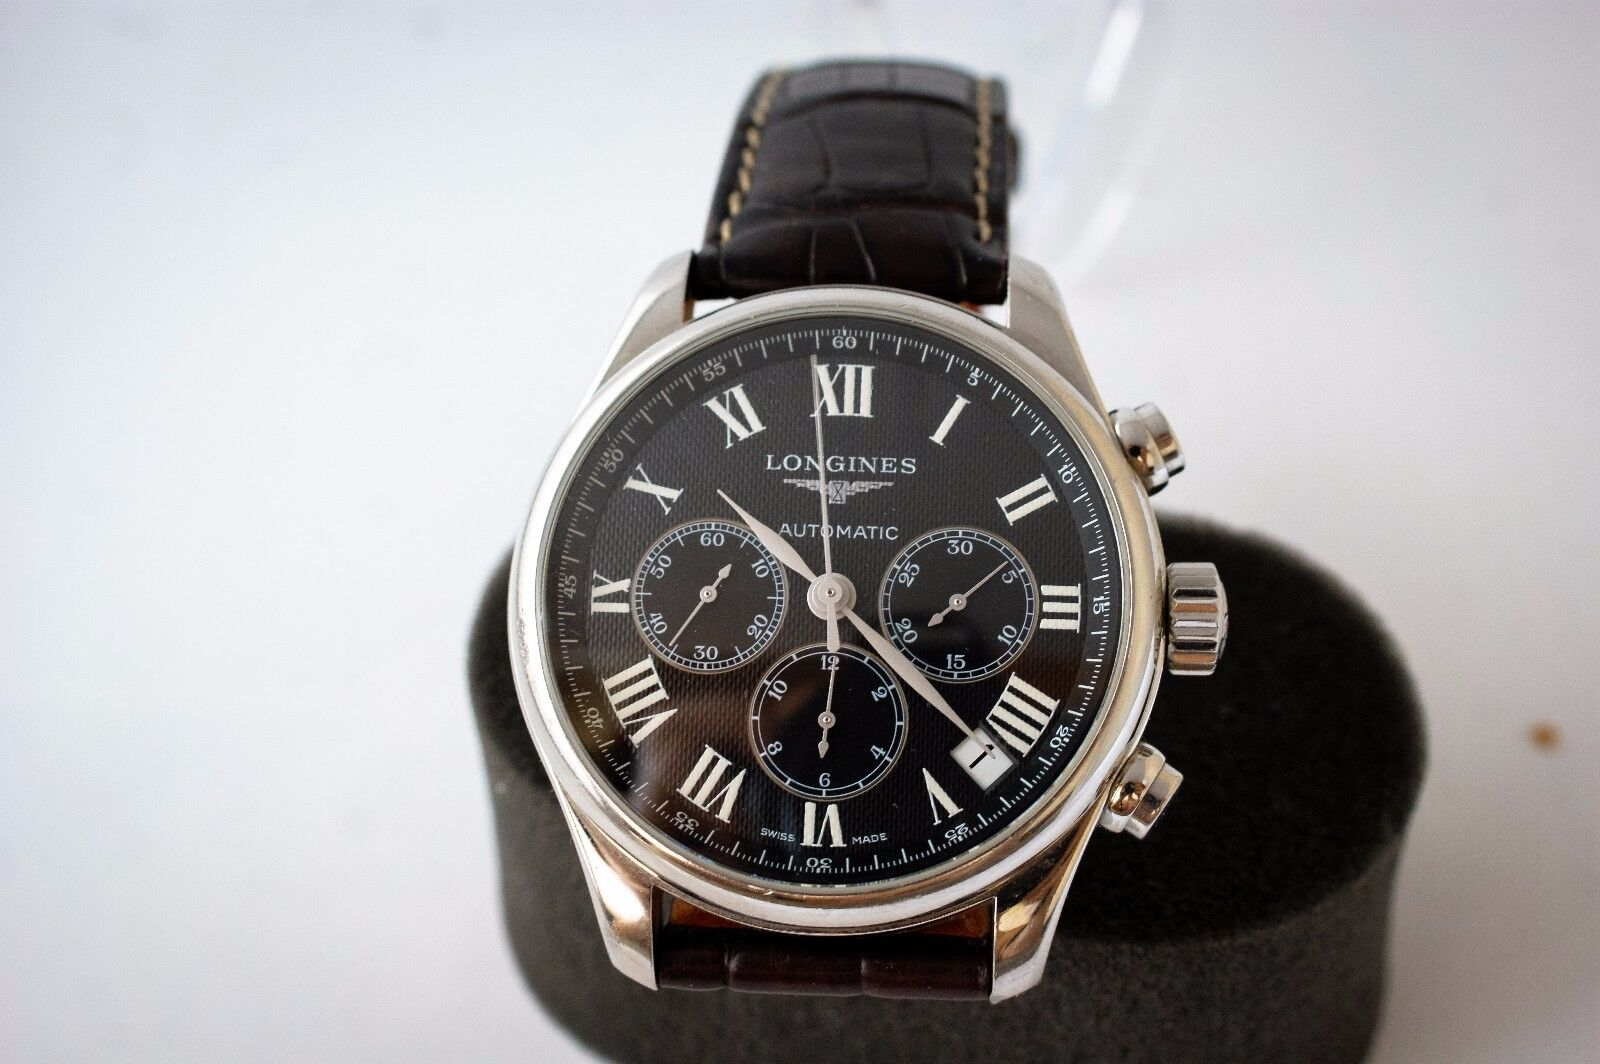 The LONGINES MASTER Collection Chronograph Automatic L.696.2 Wristwatch Date - watch picture 1